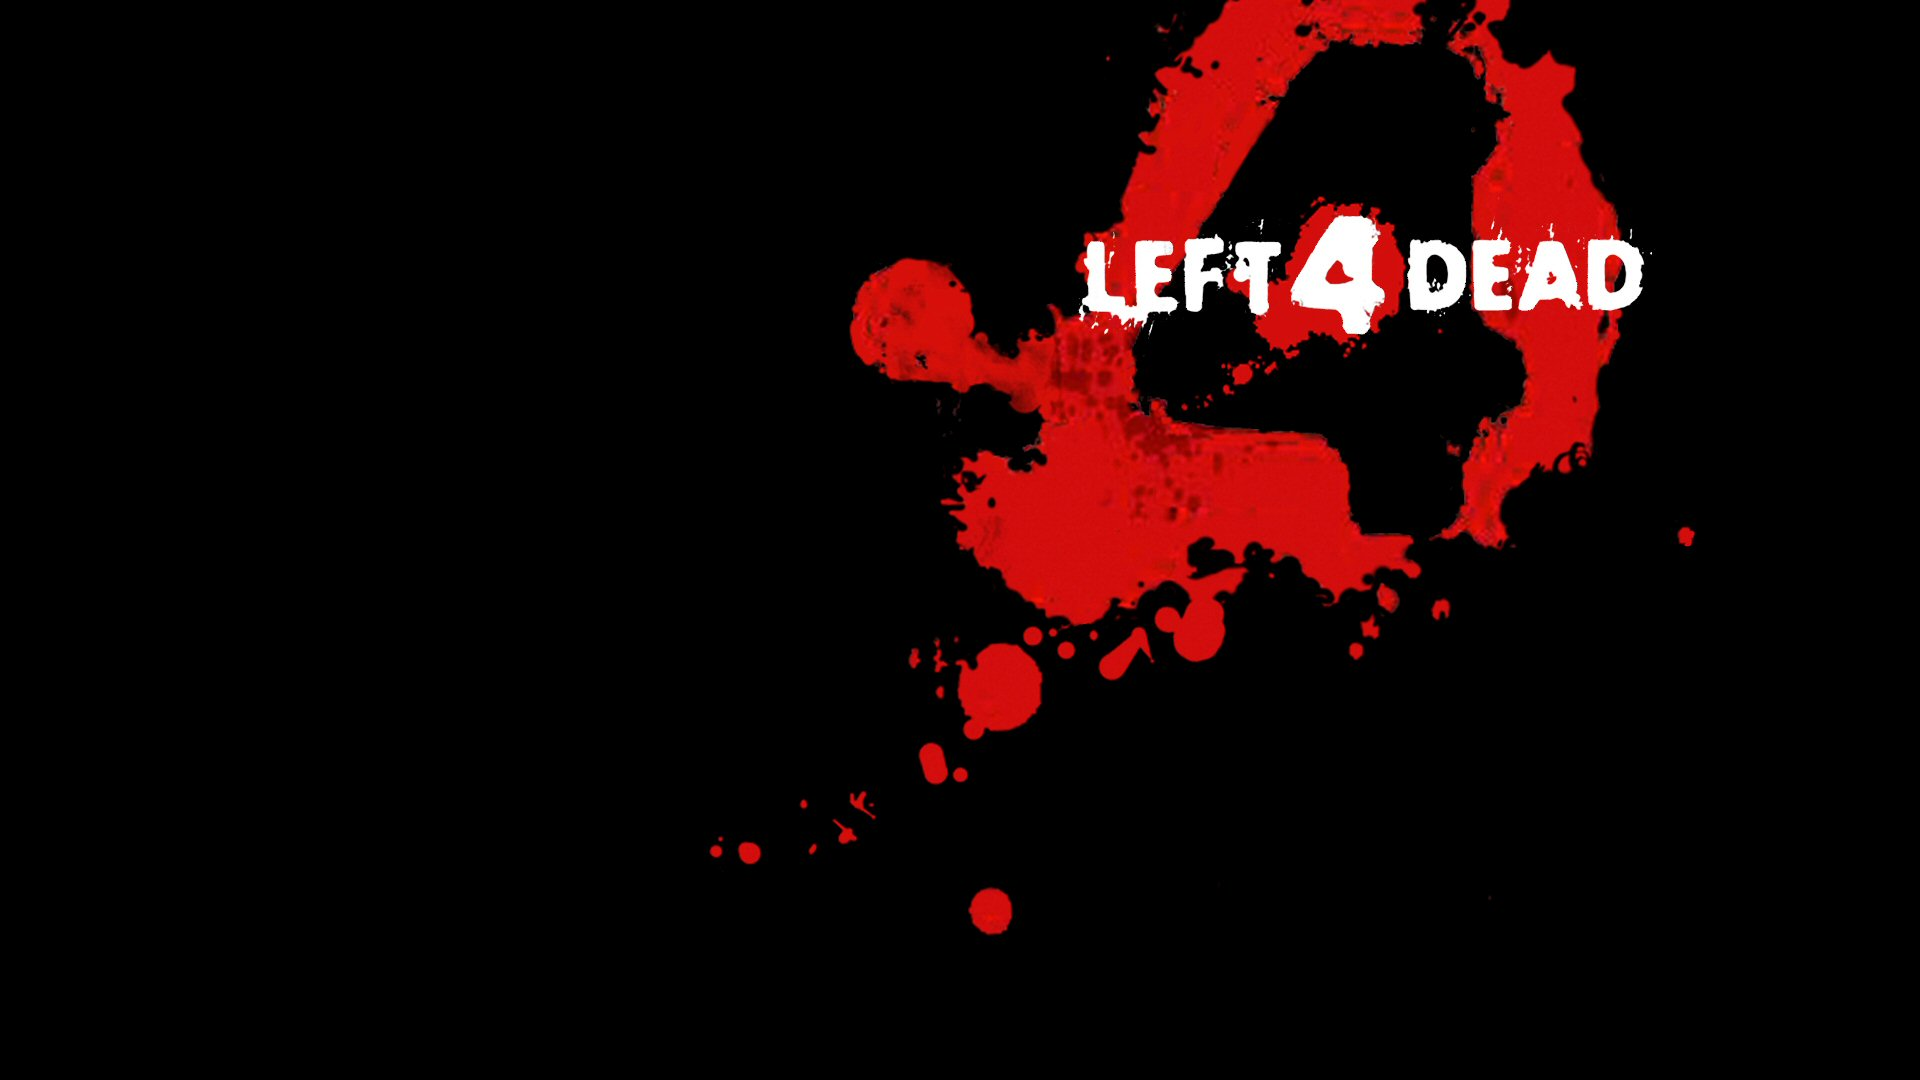 Left 4 Dead 001. Submitted by Jae Brav. NXE L4D Large Logo